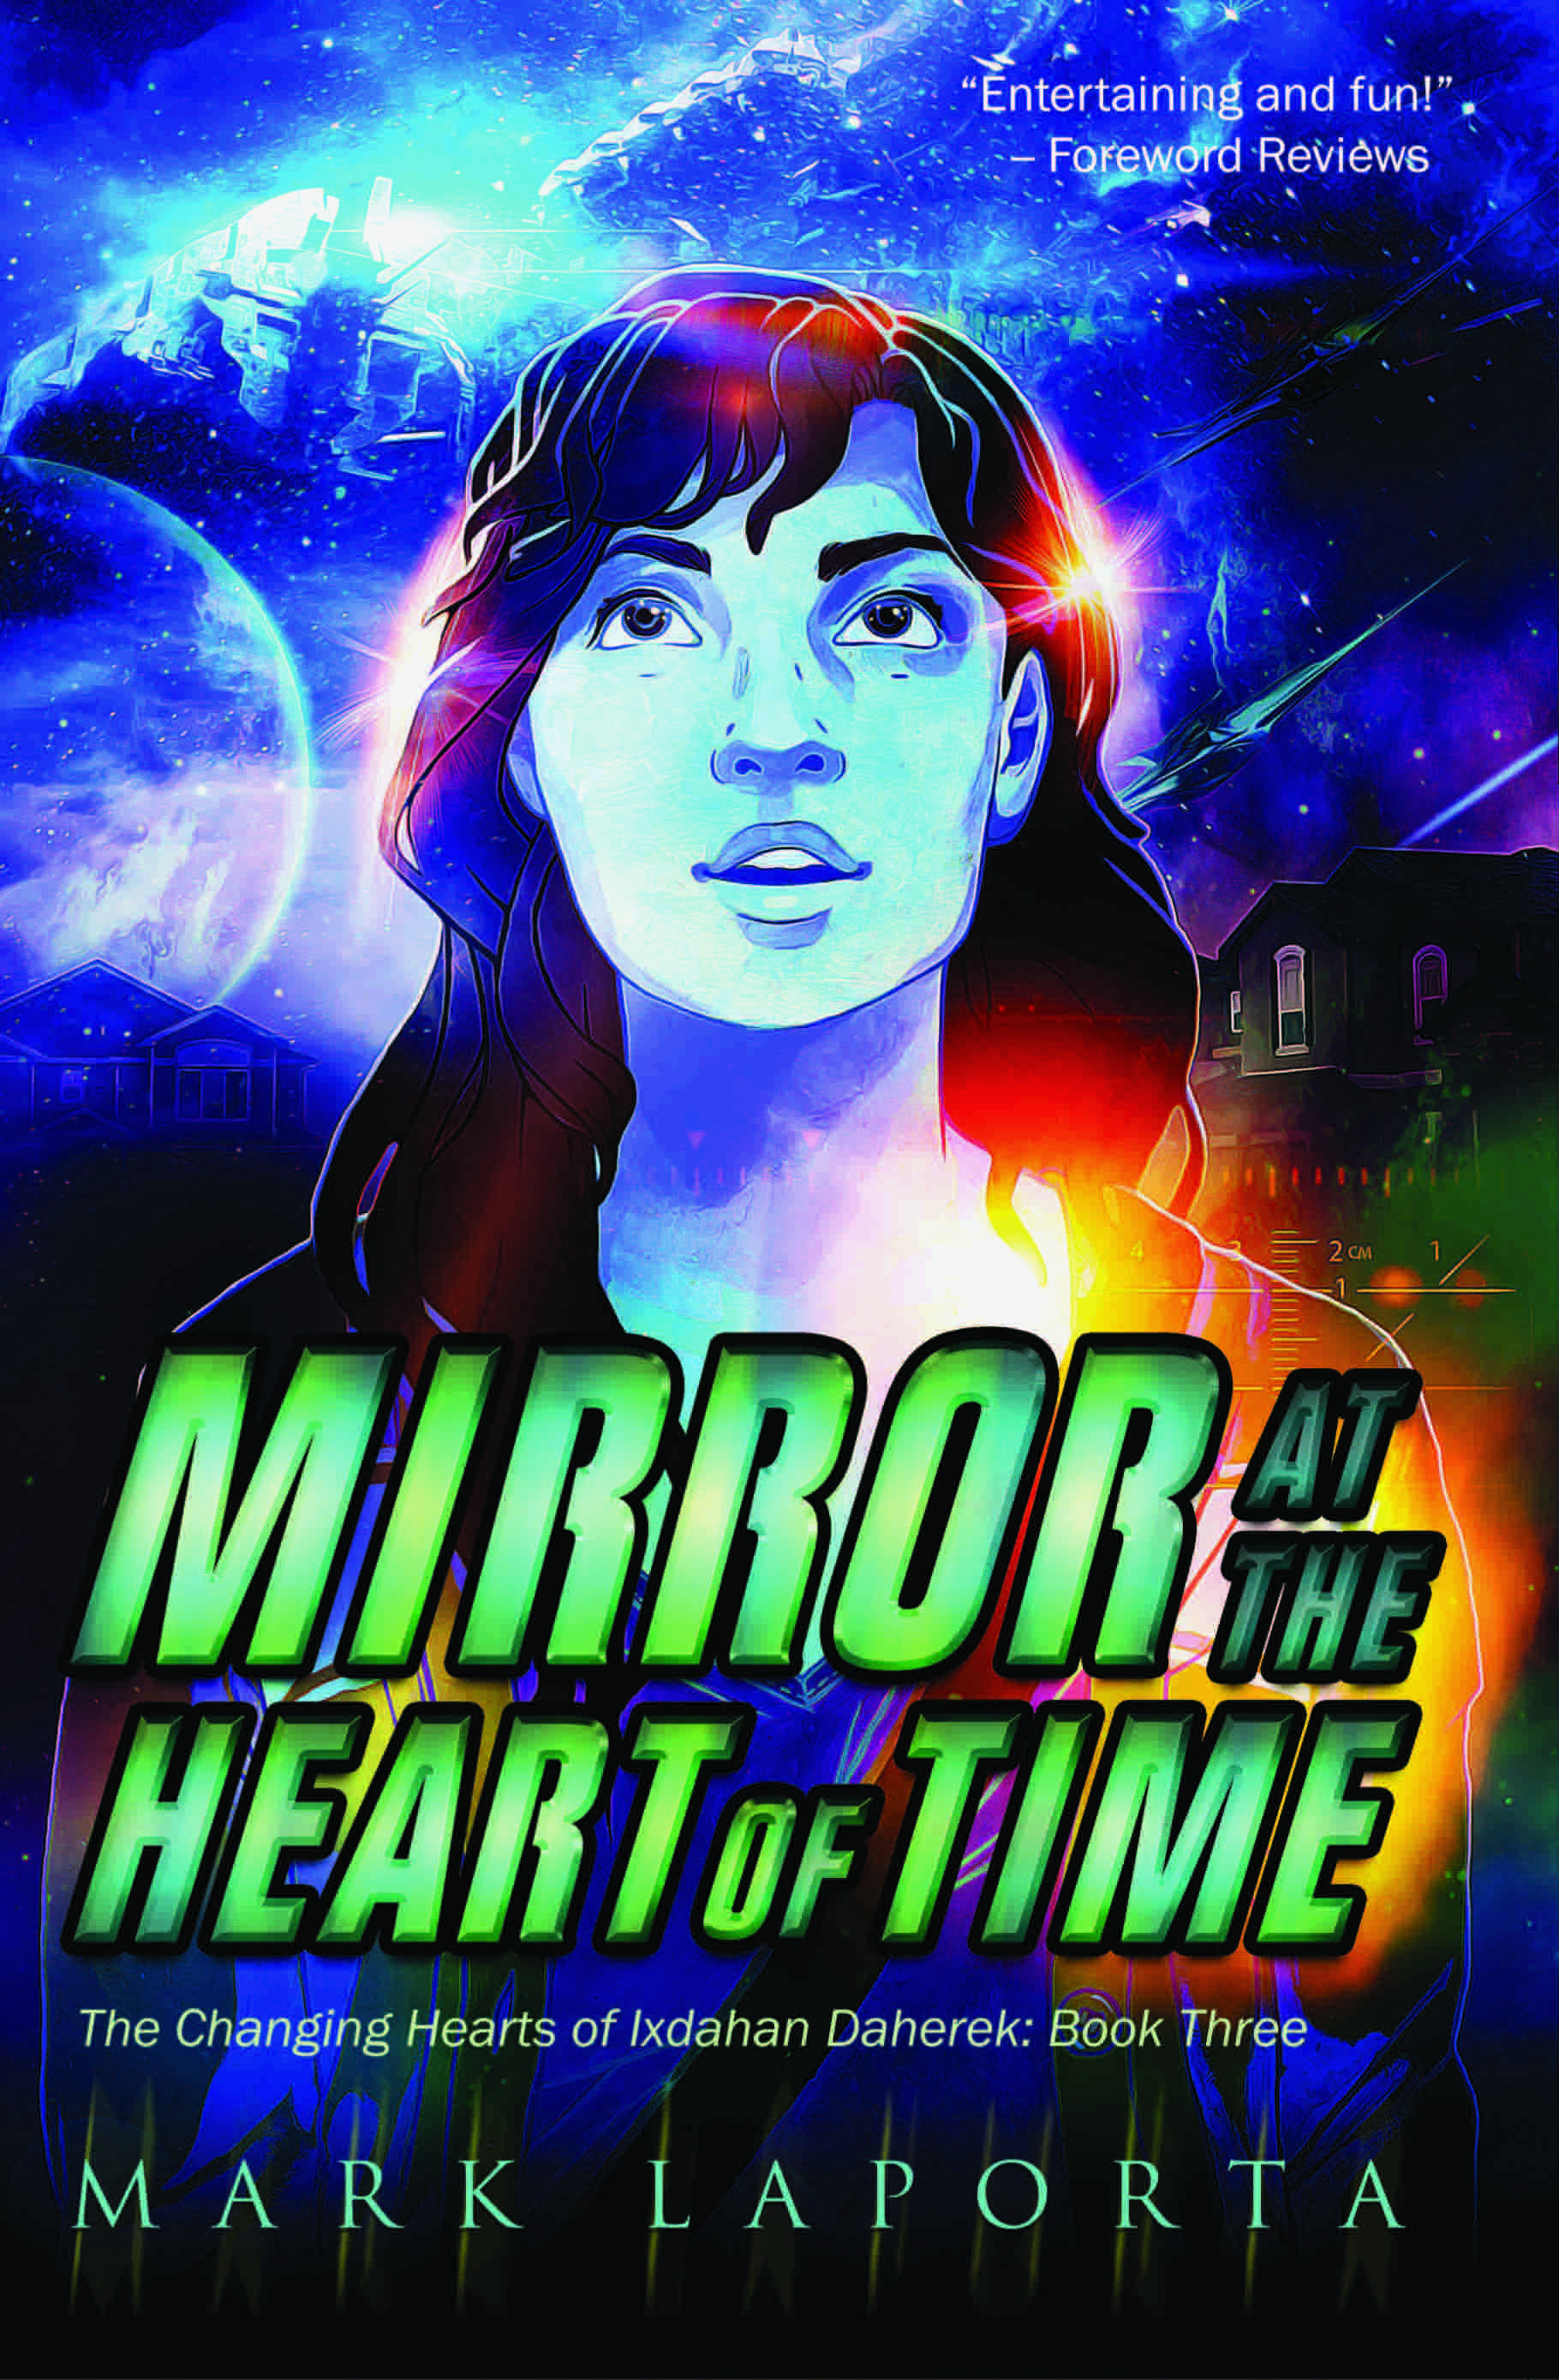 mirror-at-the-heart-of-time-cover-for-publicity-reduced-size